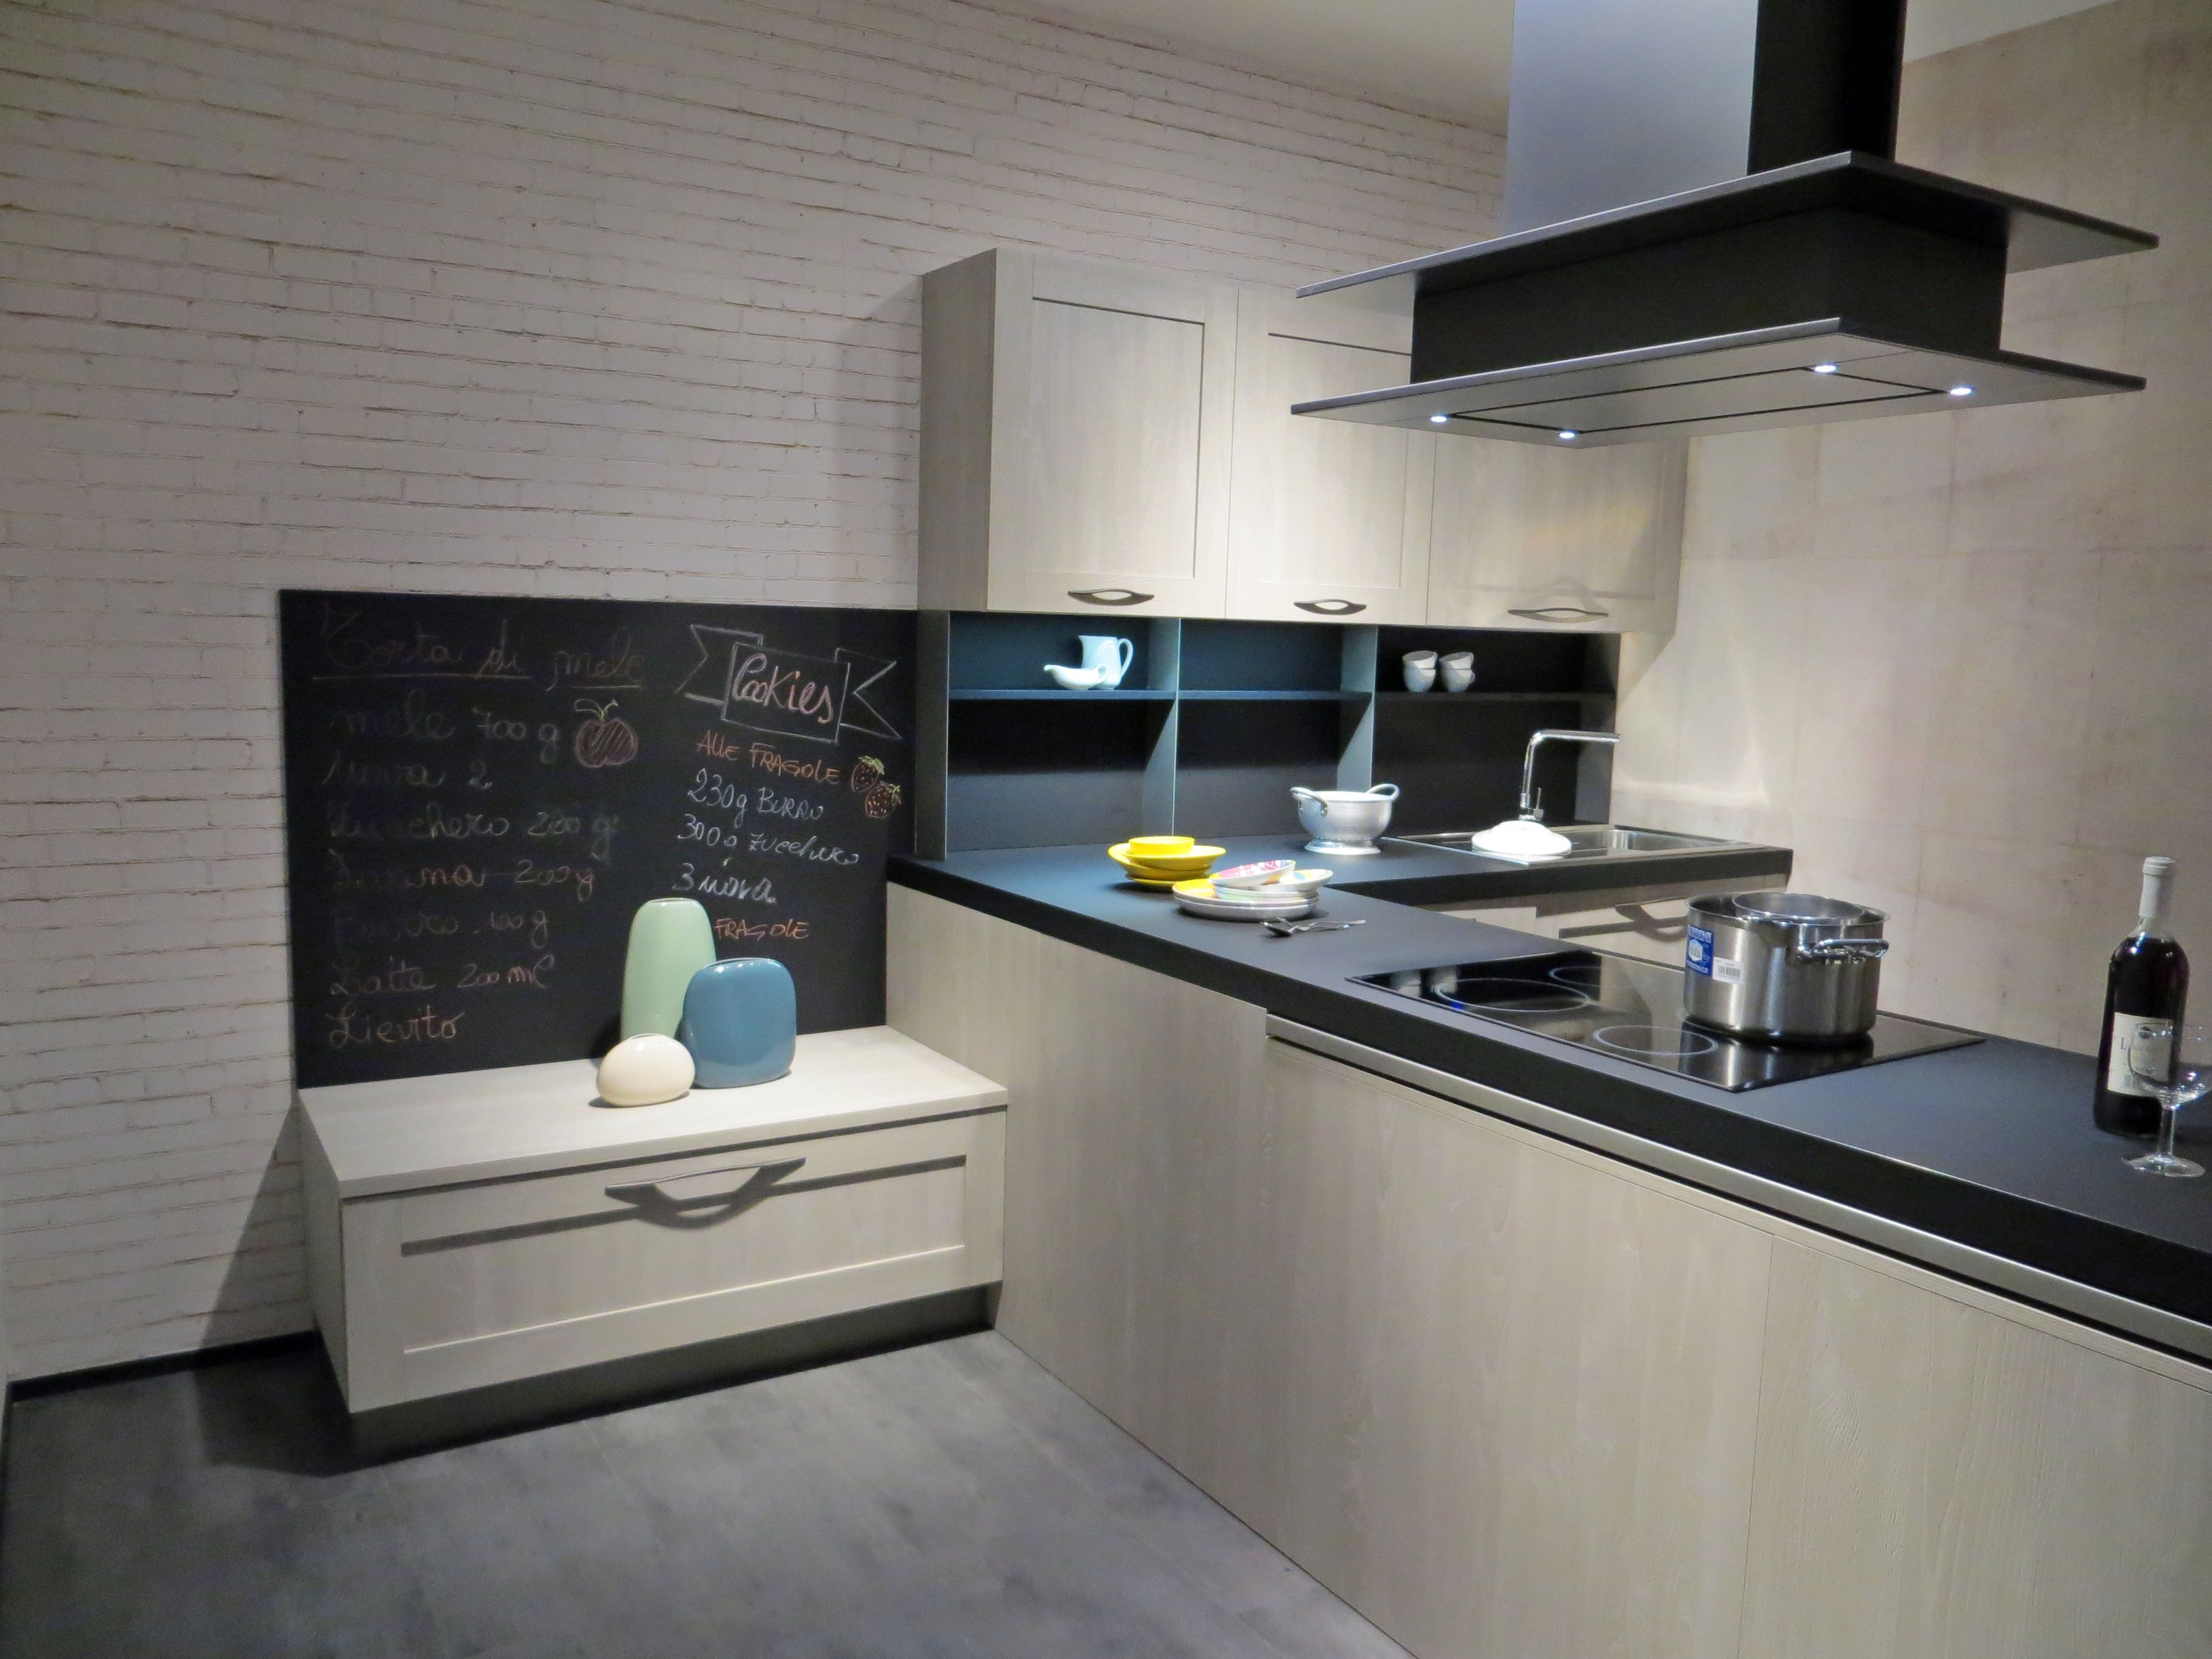 Nuovo stand stosa cucine city cucine moderne e no for Cucine pinterest